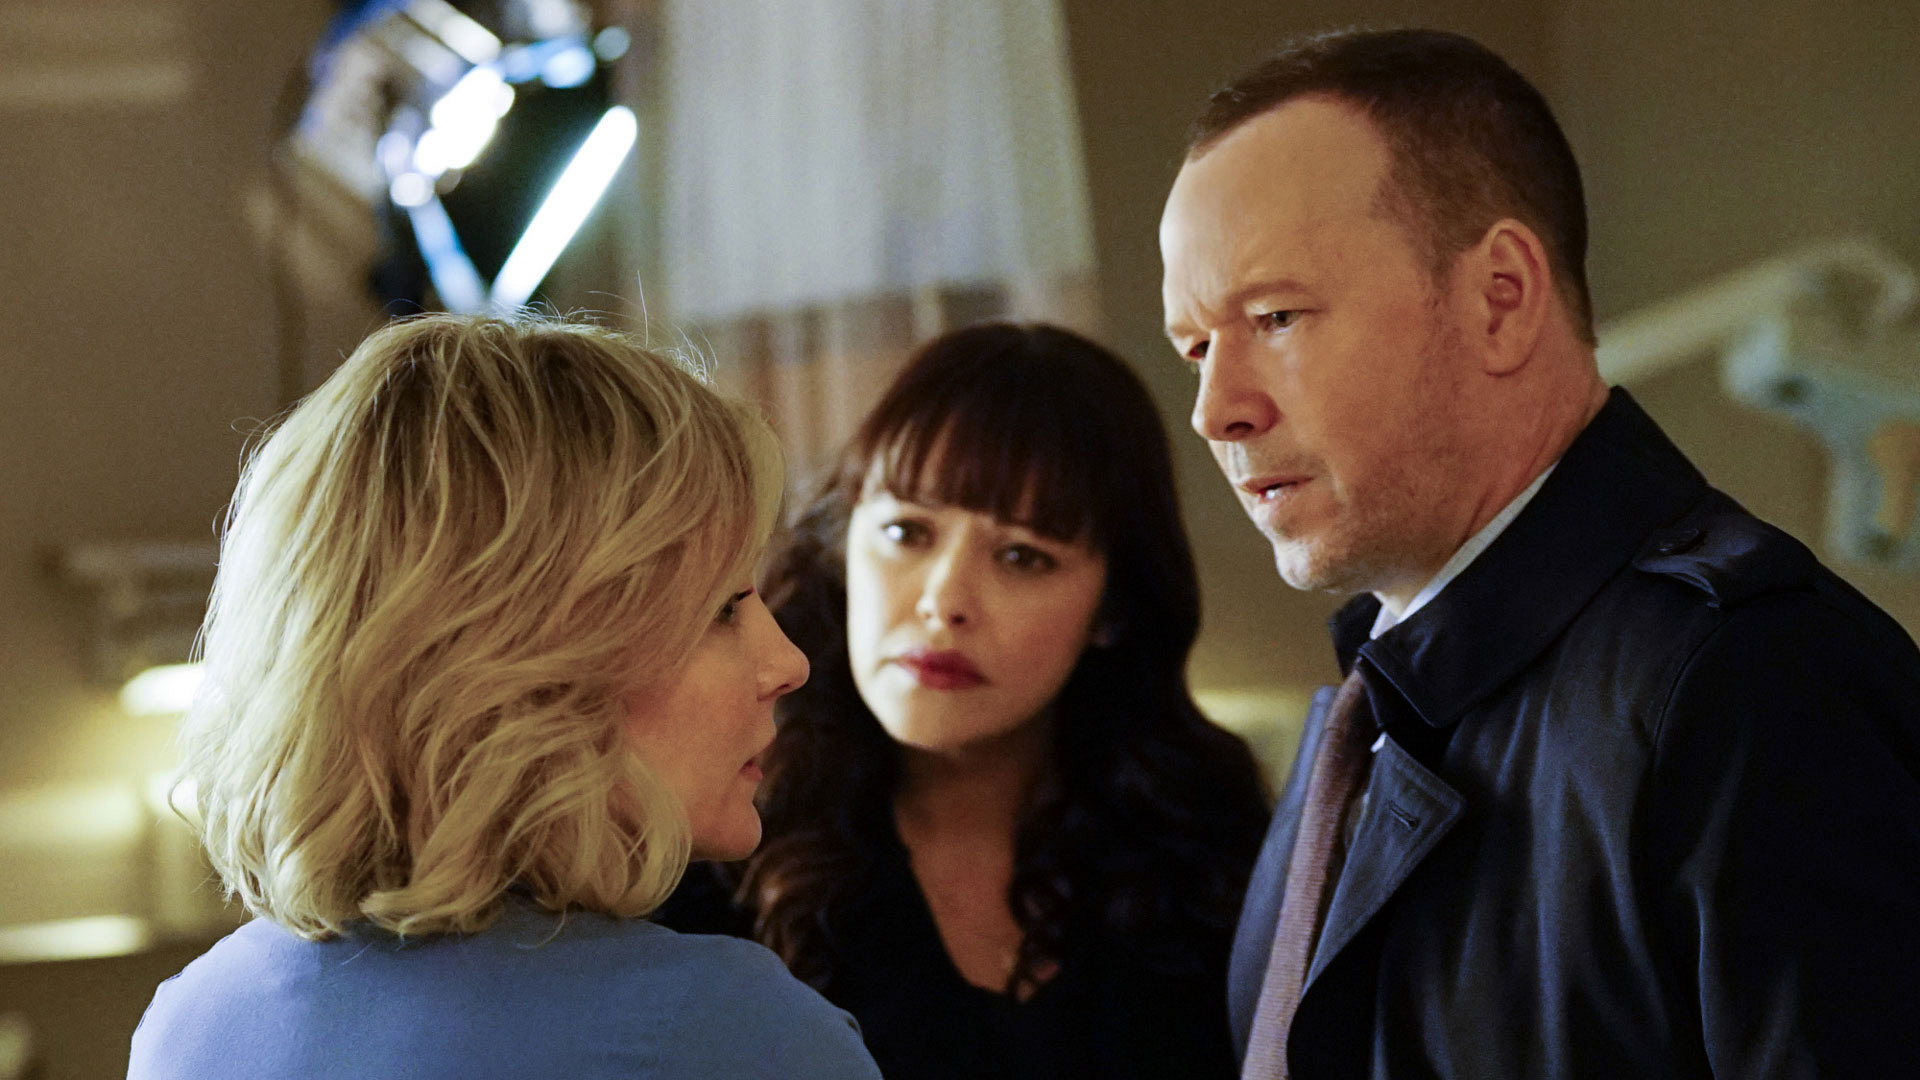 Amy Carlson as Linda Reagan, Marisa Ramirez as Detective Maria Baez, and Donnie Wahlberg as Detective Danny Reagan